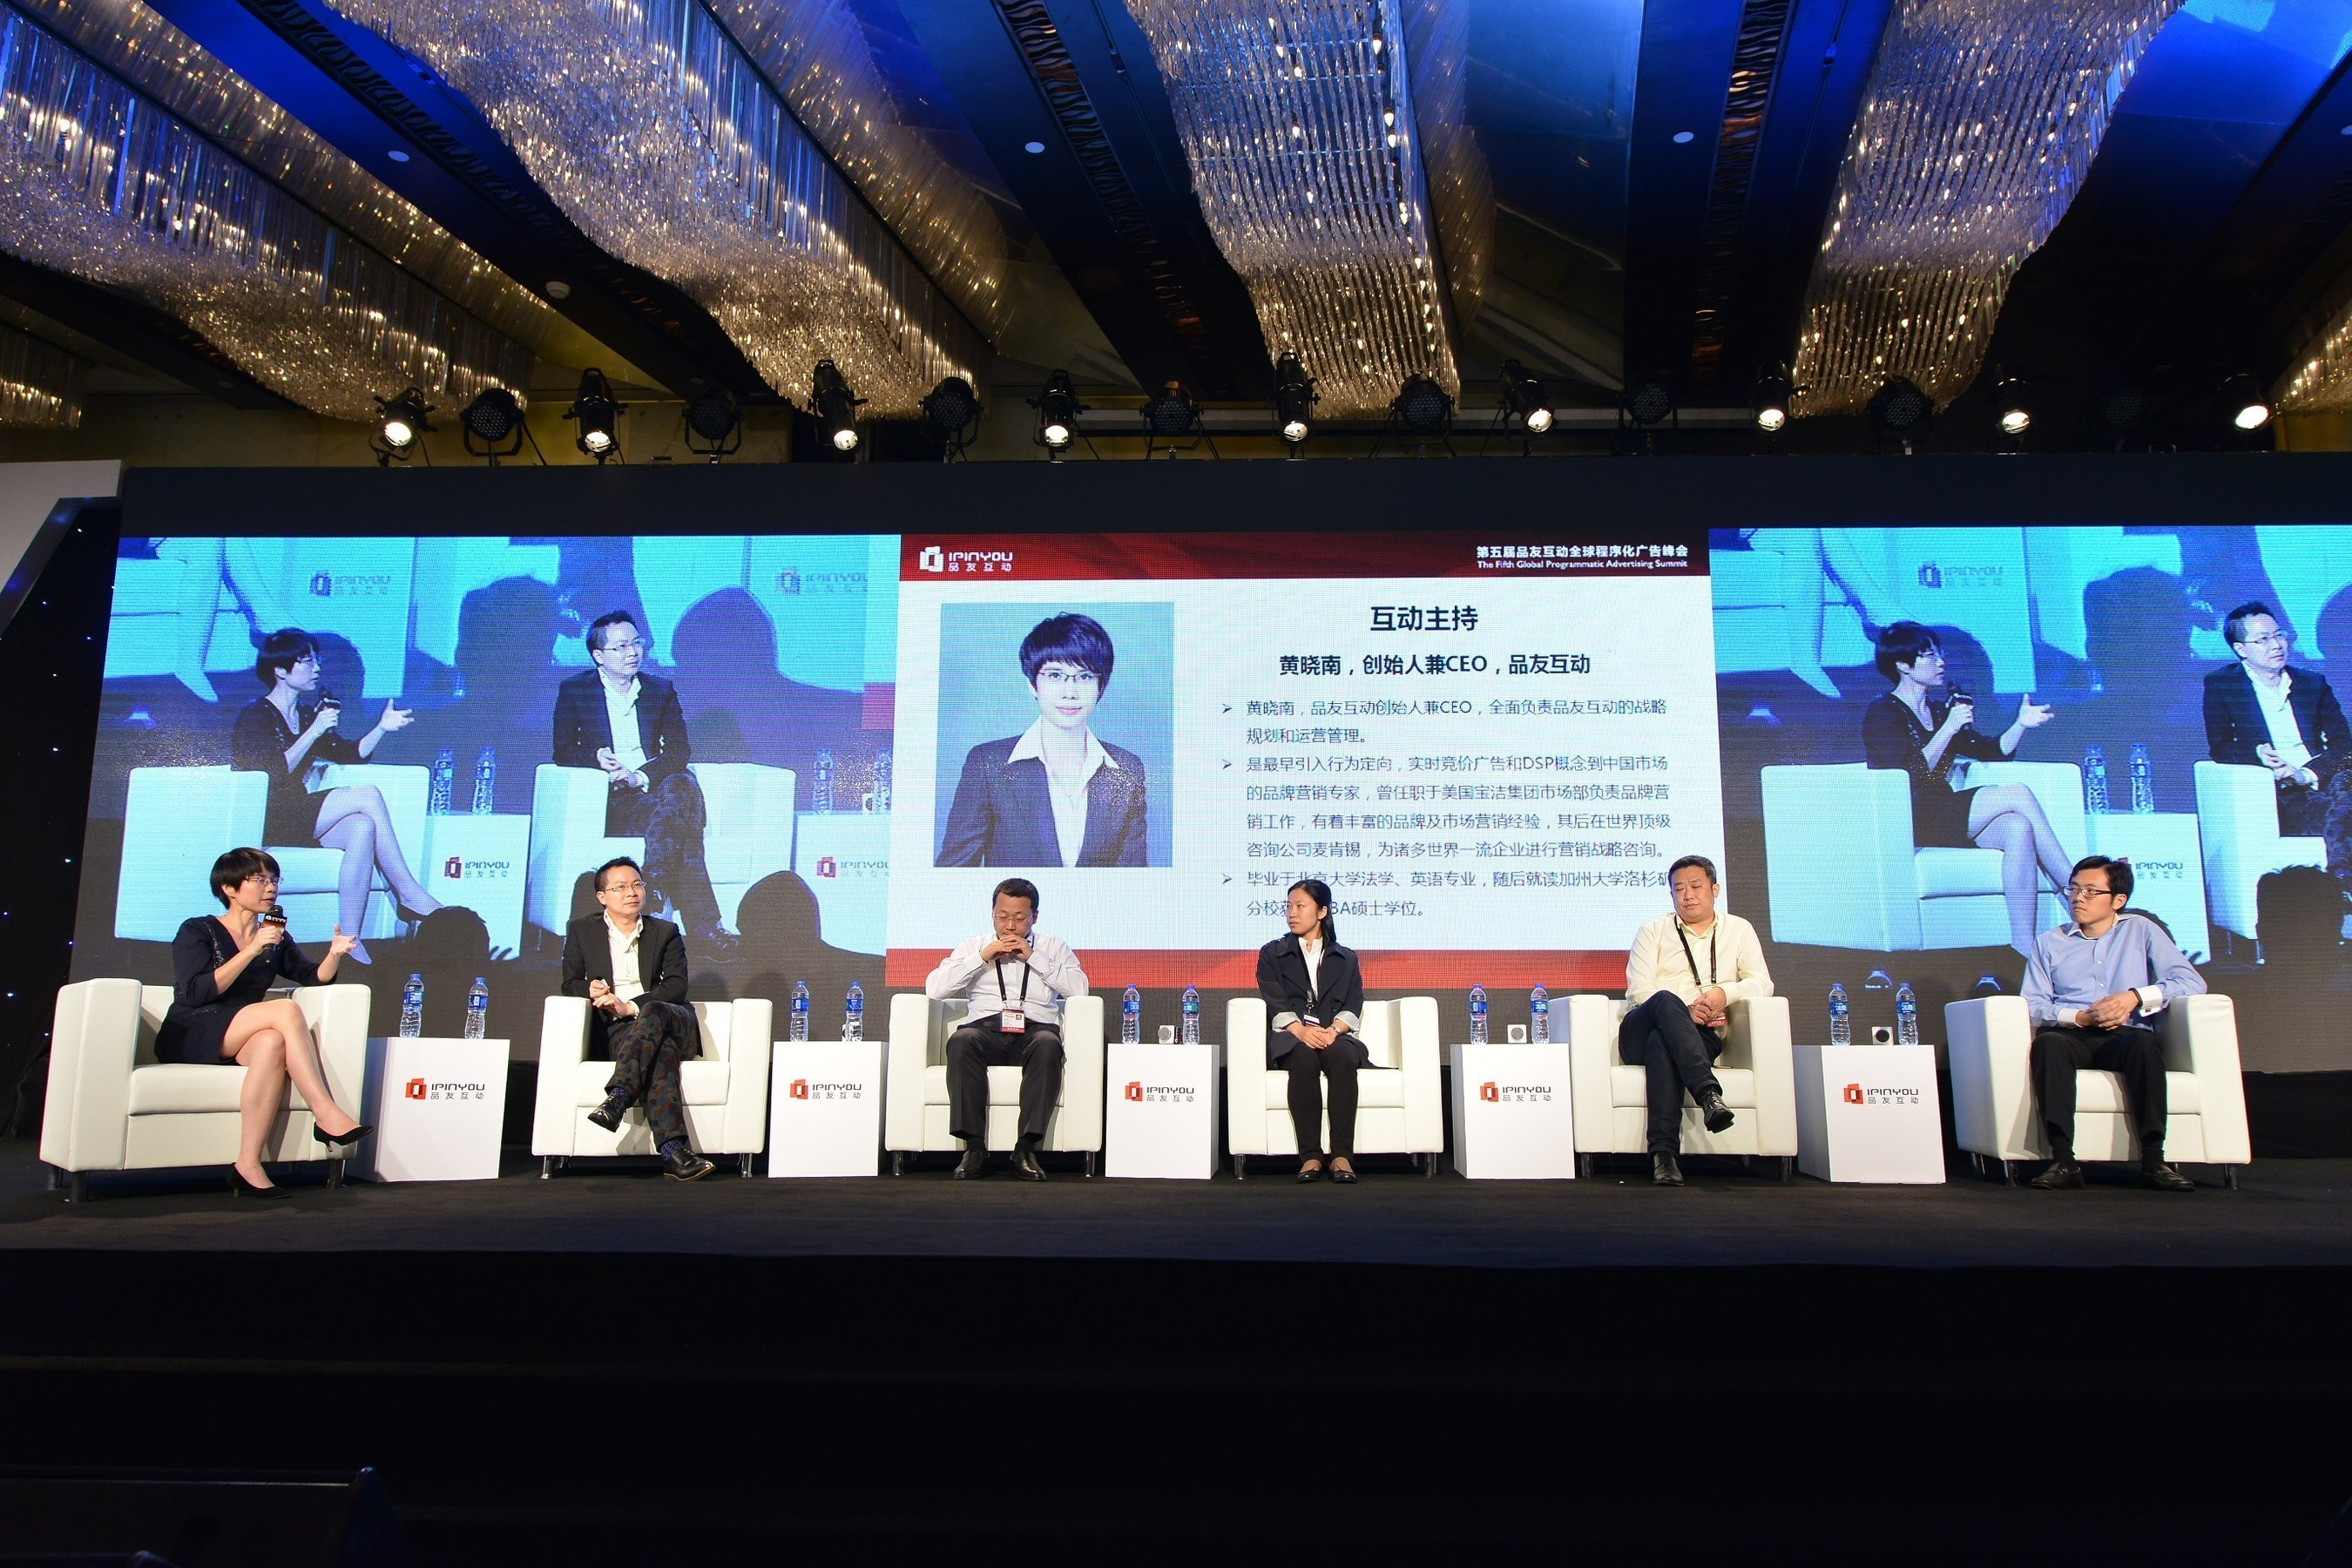 From left to right: Grace Huang (Founder & CEO of iPinYou), Guo Dongdong (VP of yhd.com), Song Zhaowei (GM of ...